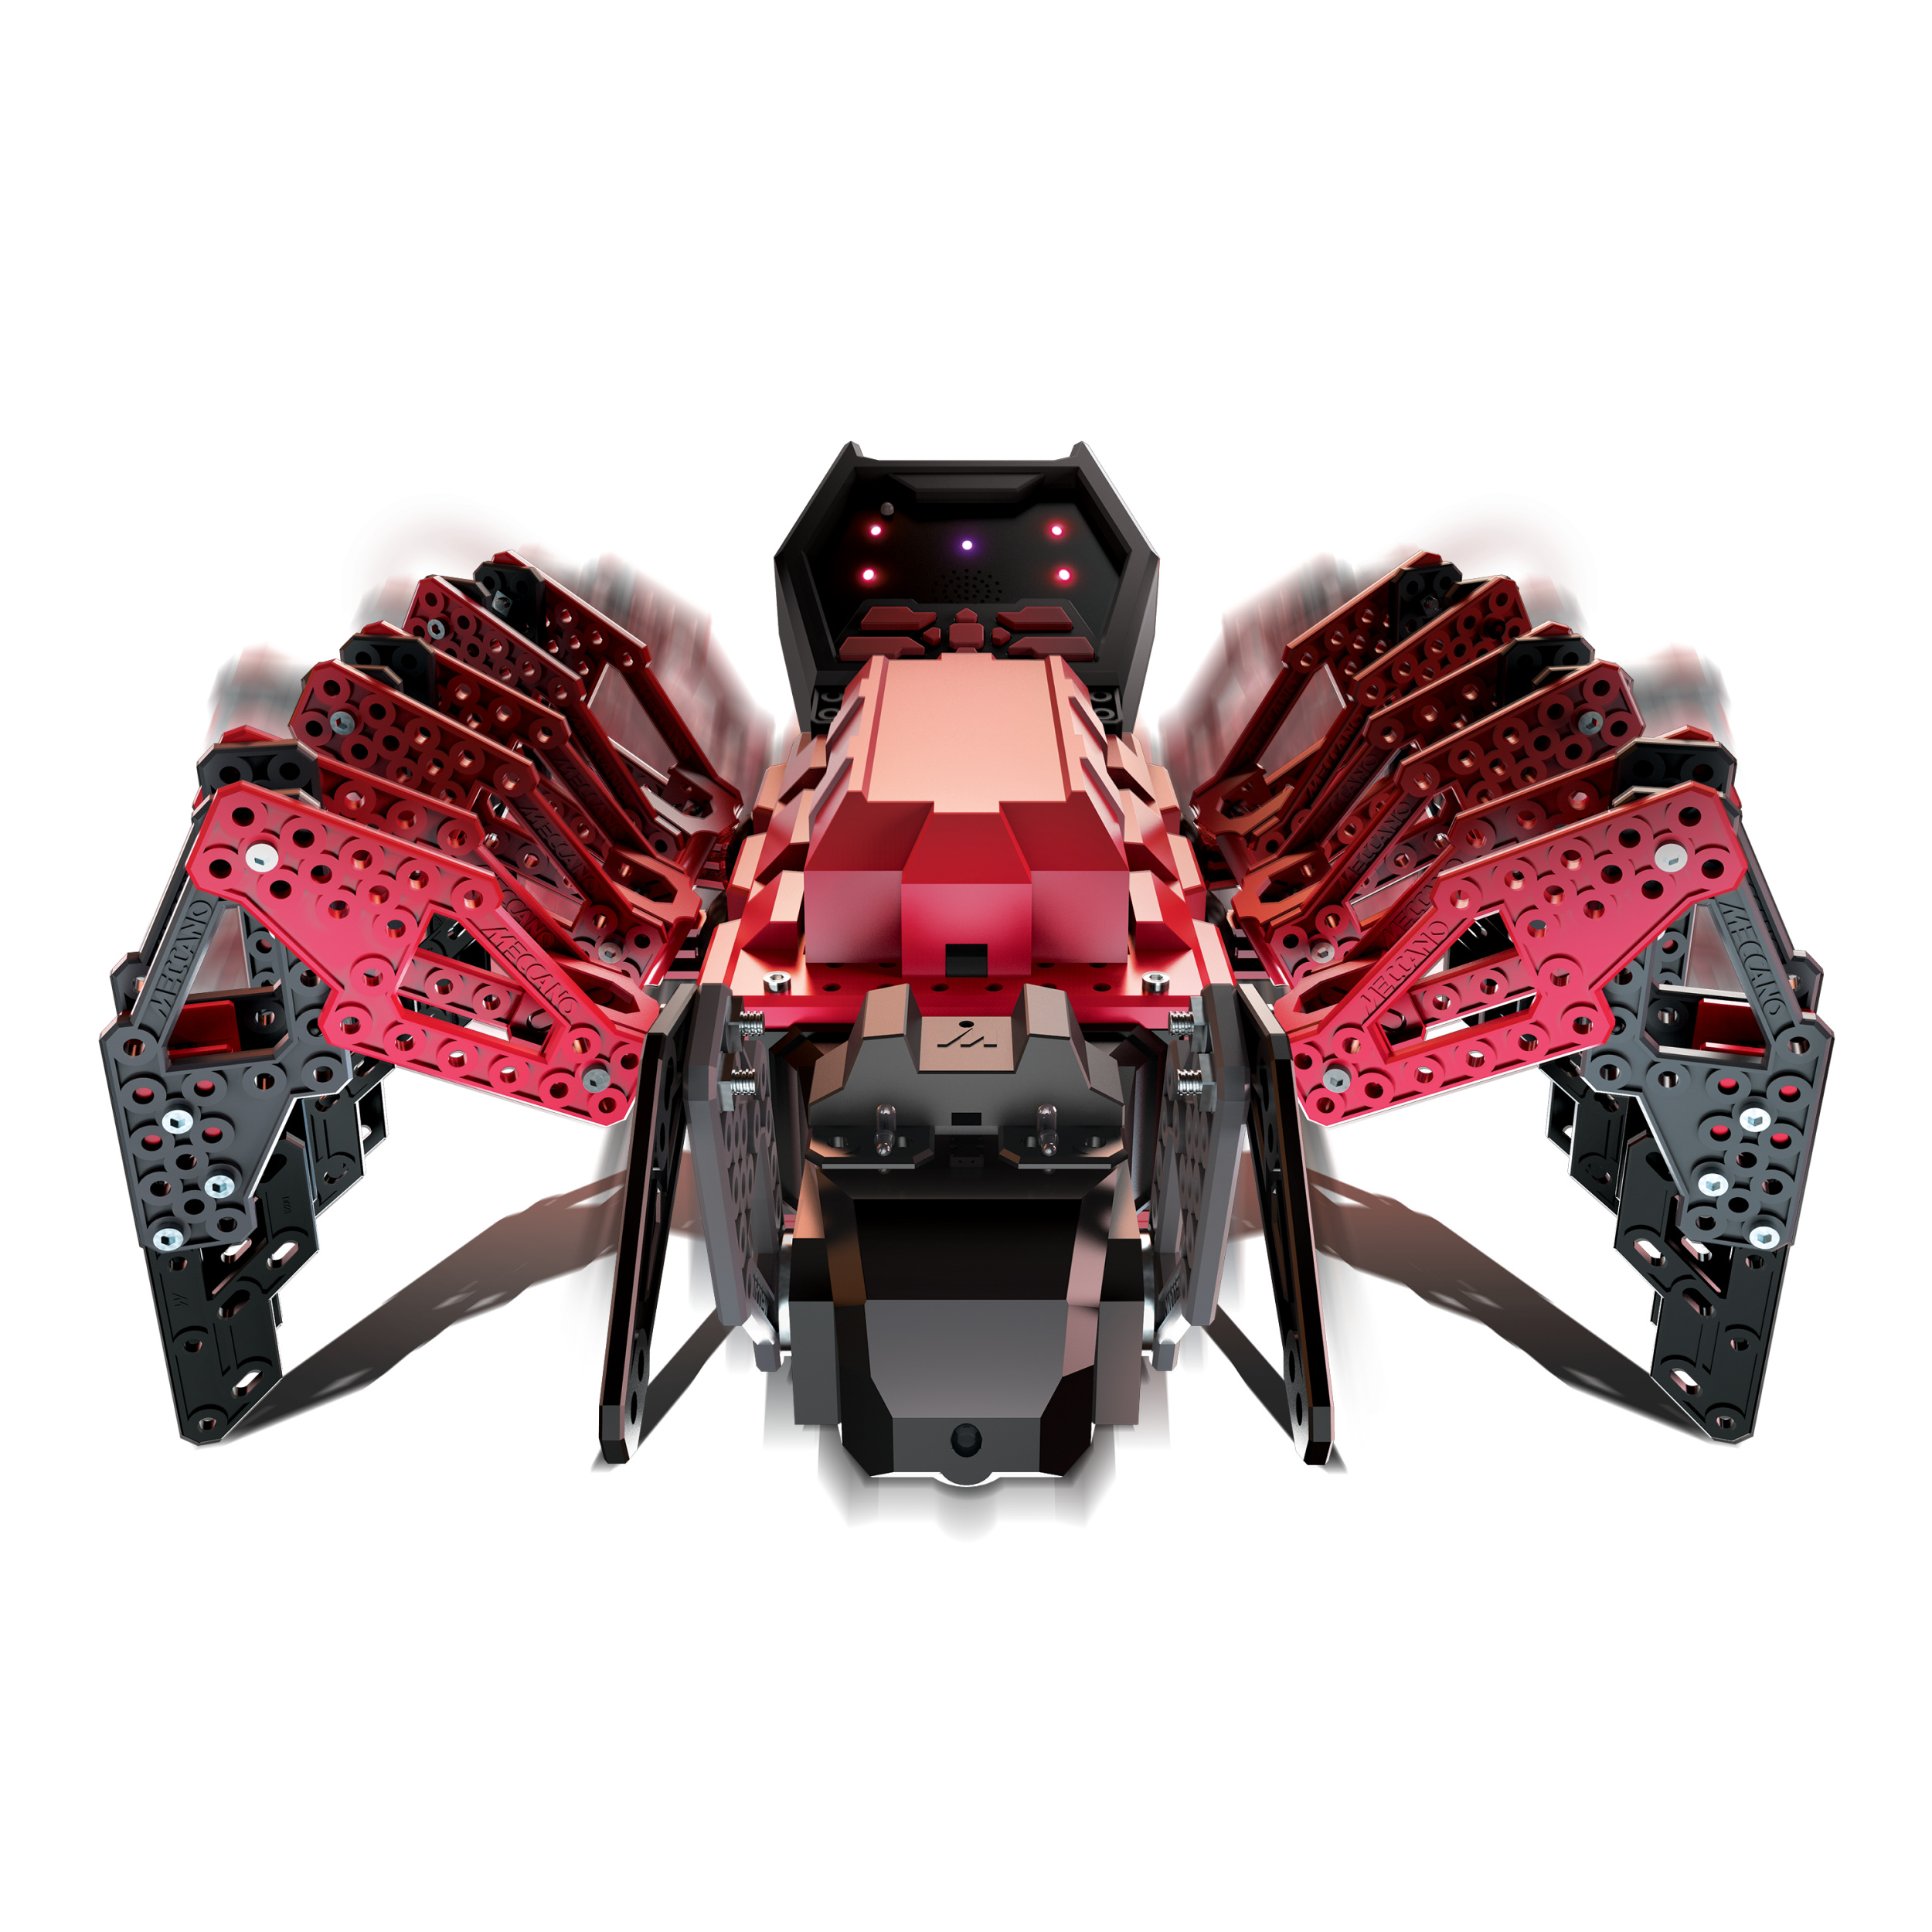 Meccano-Erector – MeccaSpider Robotic Programmable Toy with Built-in Games